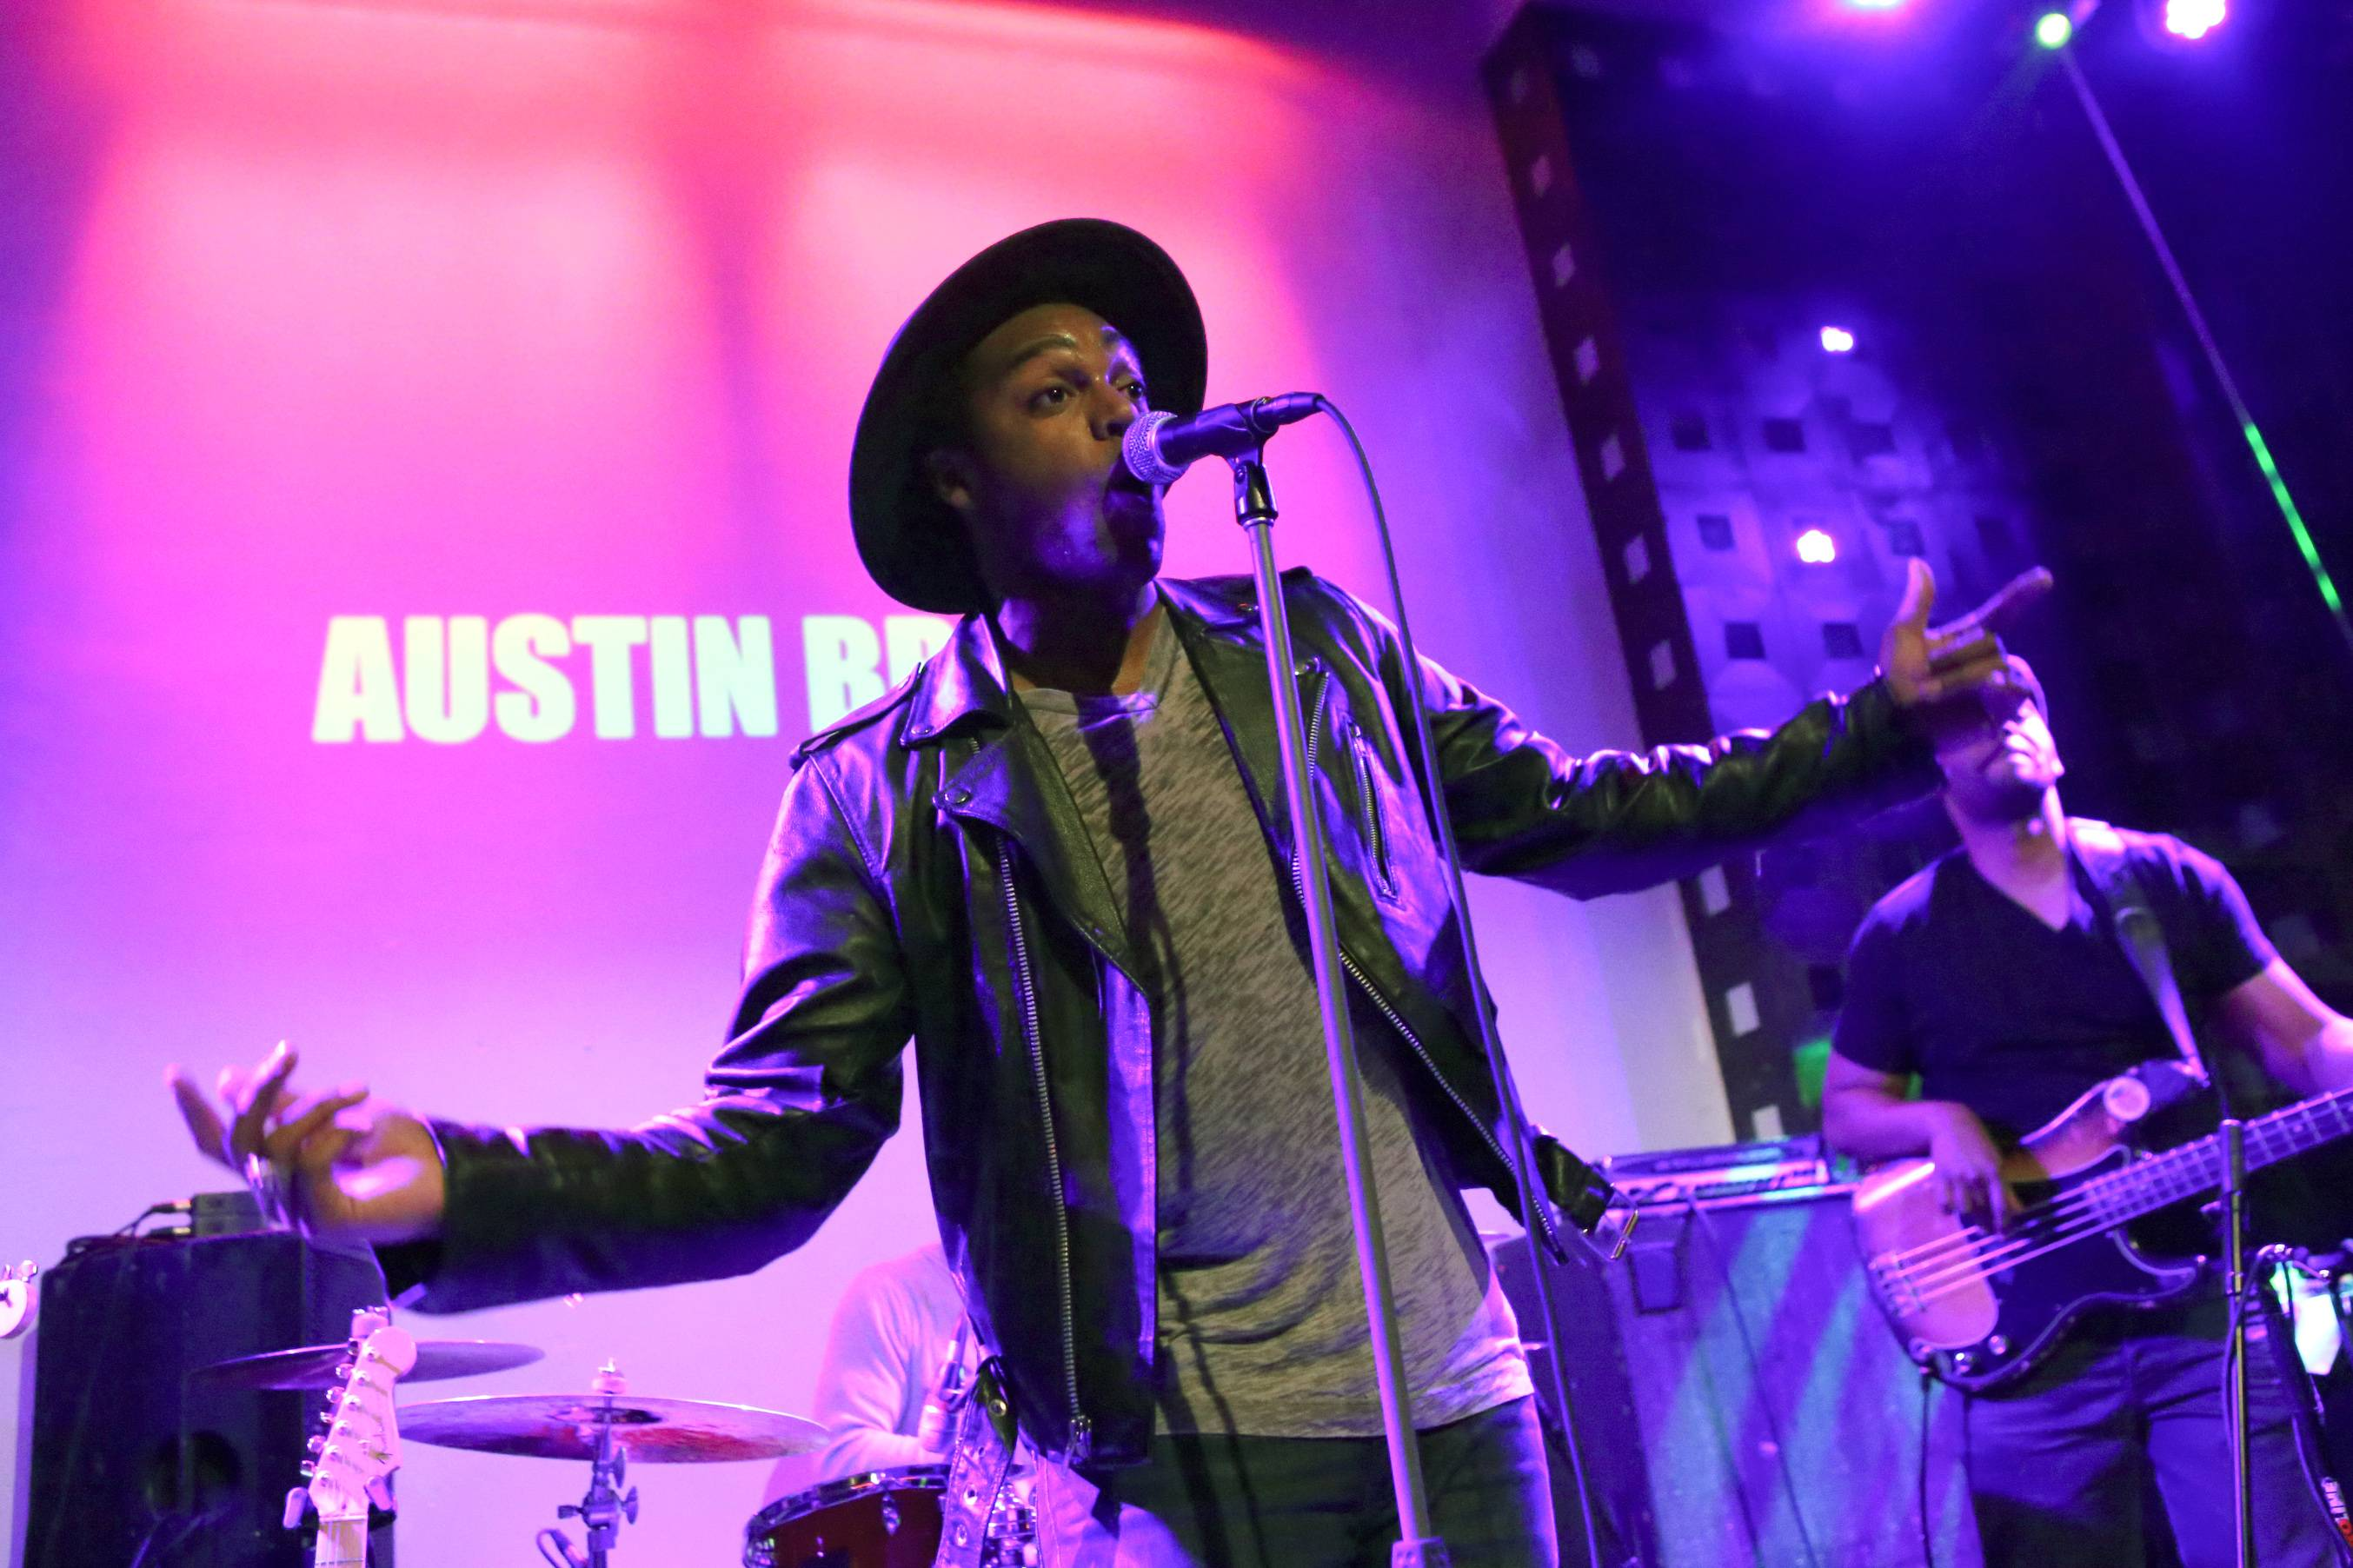 Highway to the Sky - Austin Brownlets his vocals soar as he continues his ascension to stardom with yet another giant performance.(Photo: Bennett Raglin/BET/Getty Images for BET)